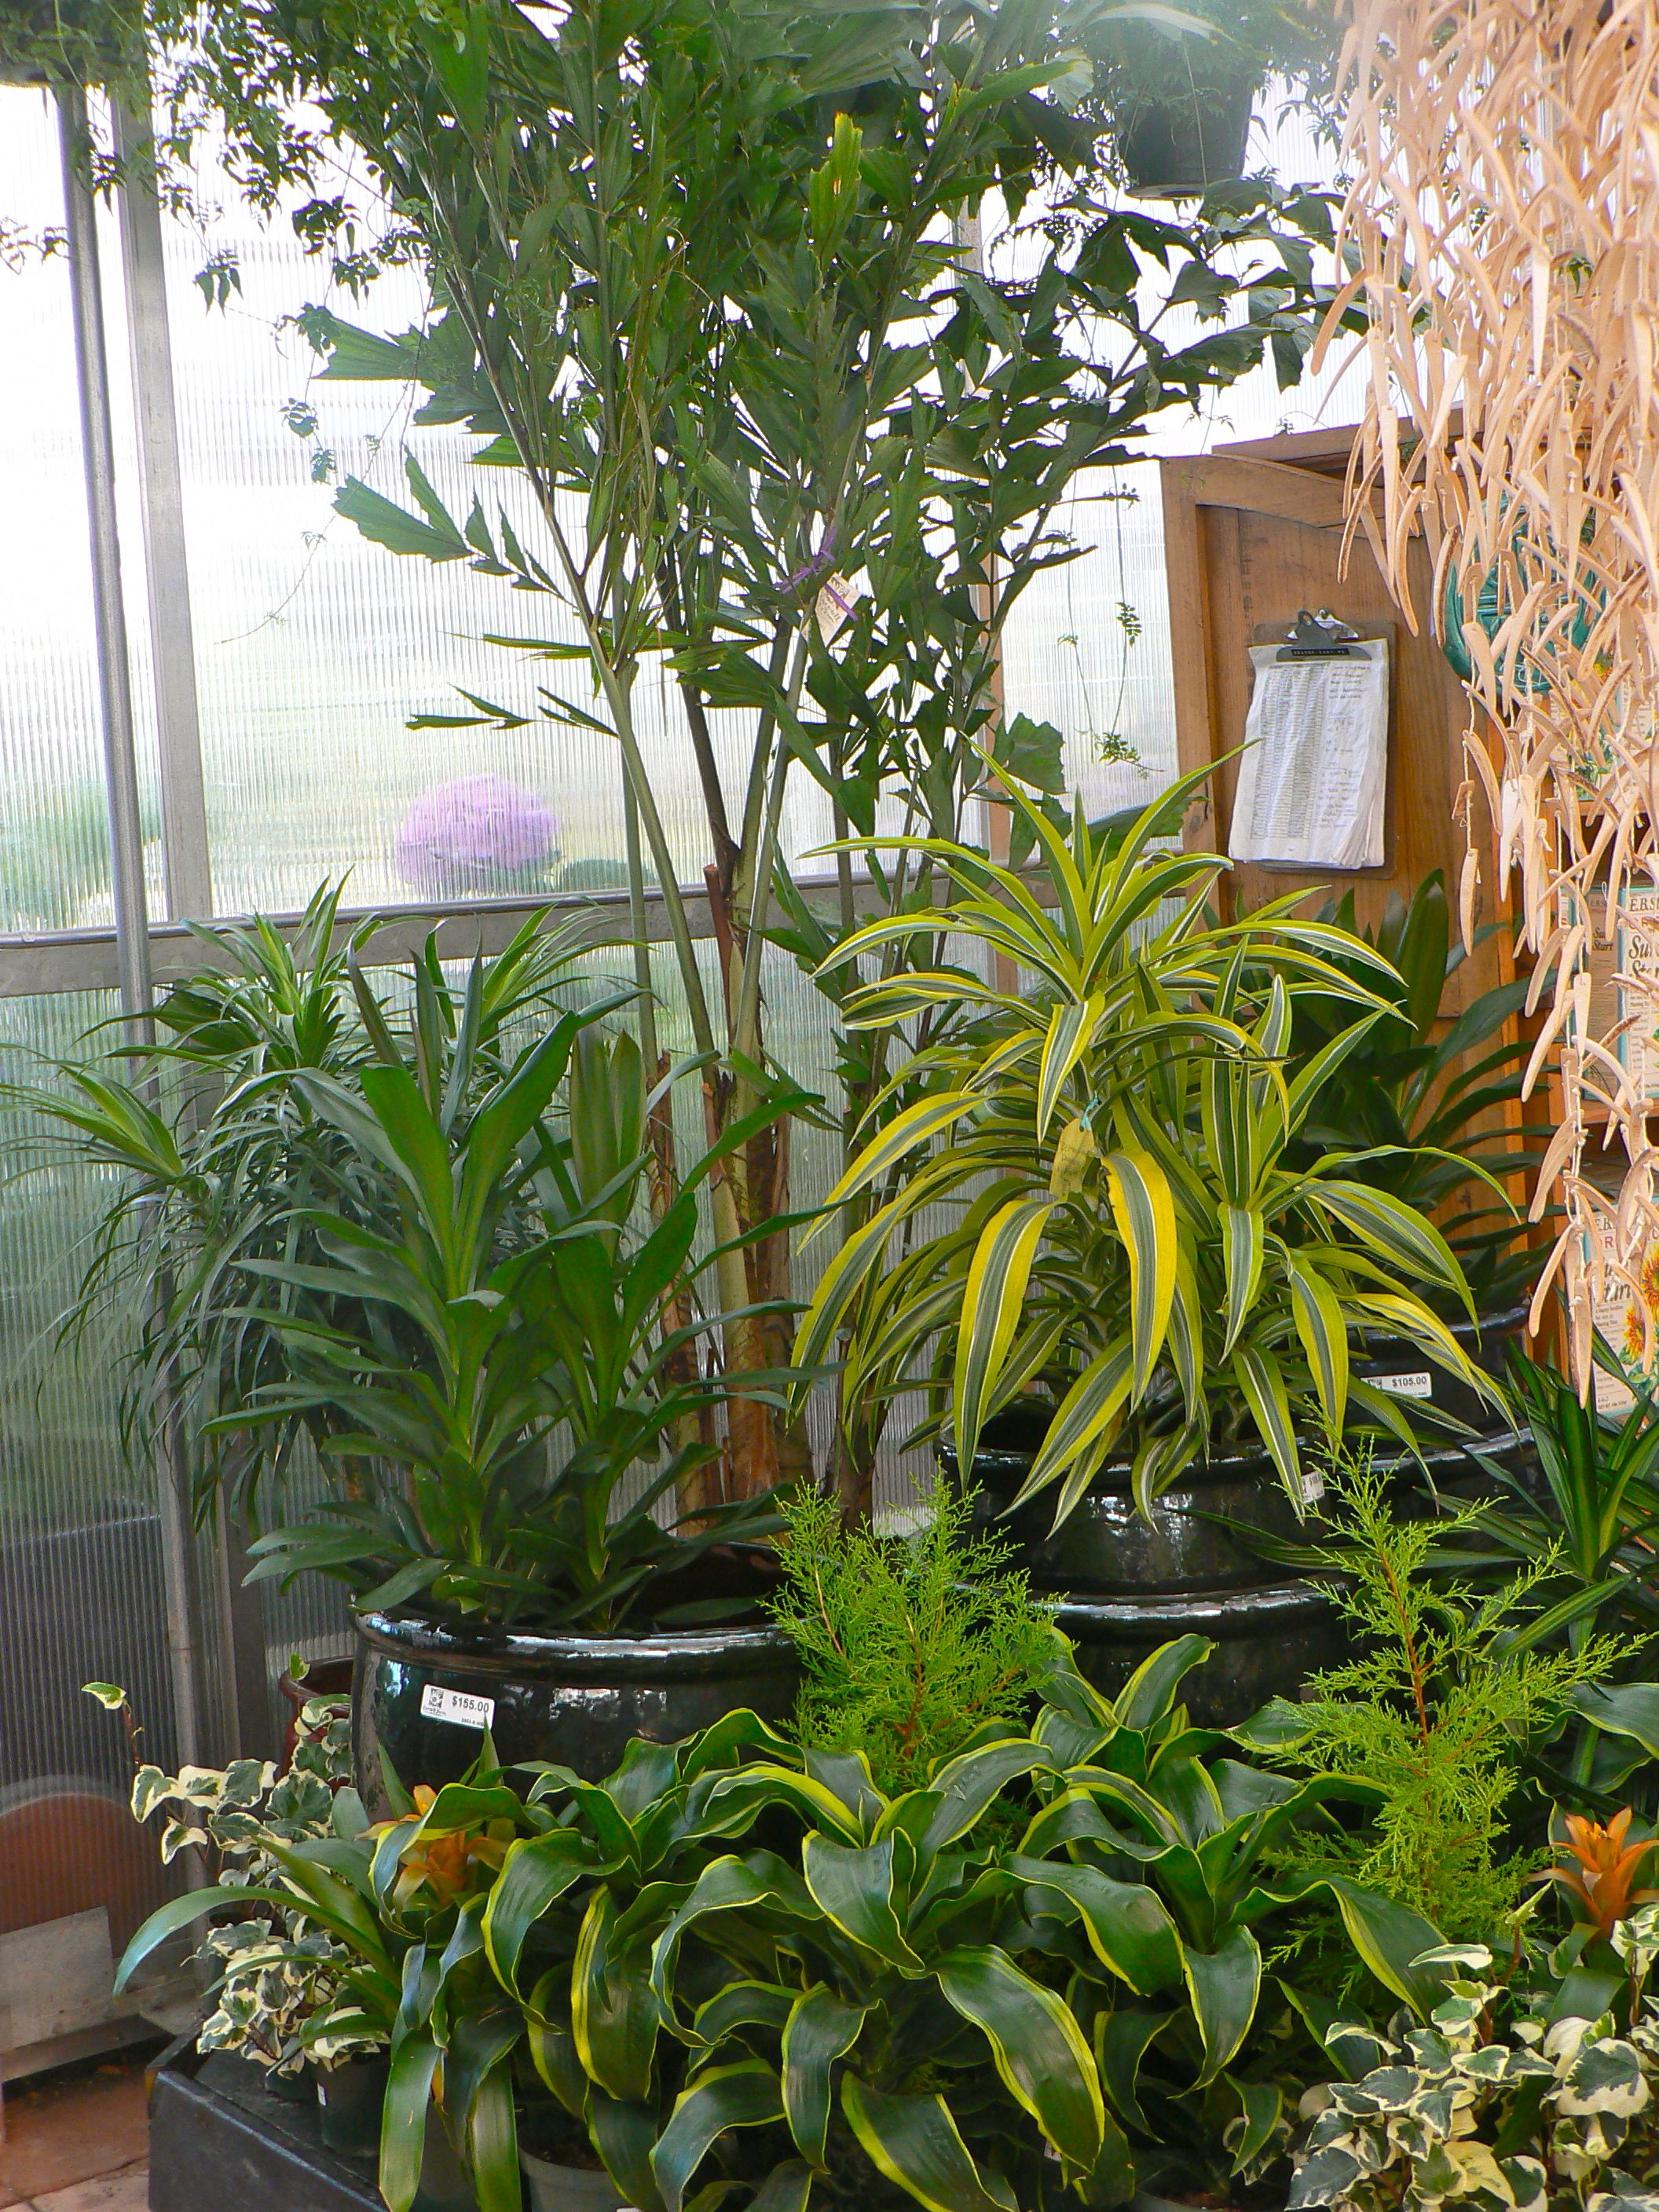 Display 2010 Featuring Different Types Of Dracaena Houseplants